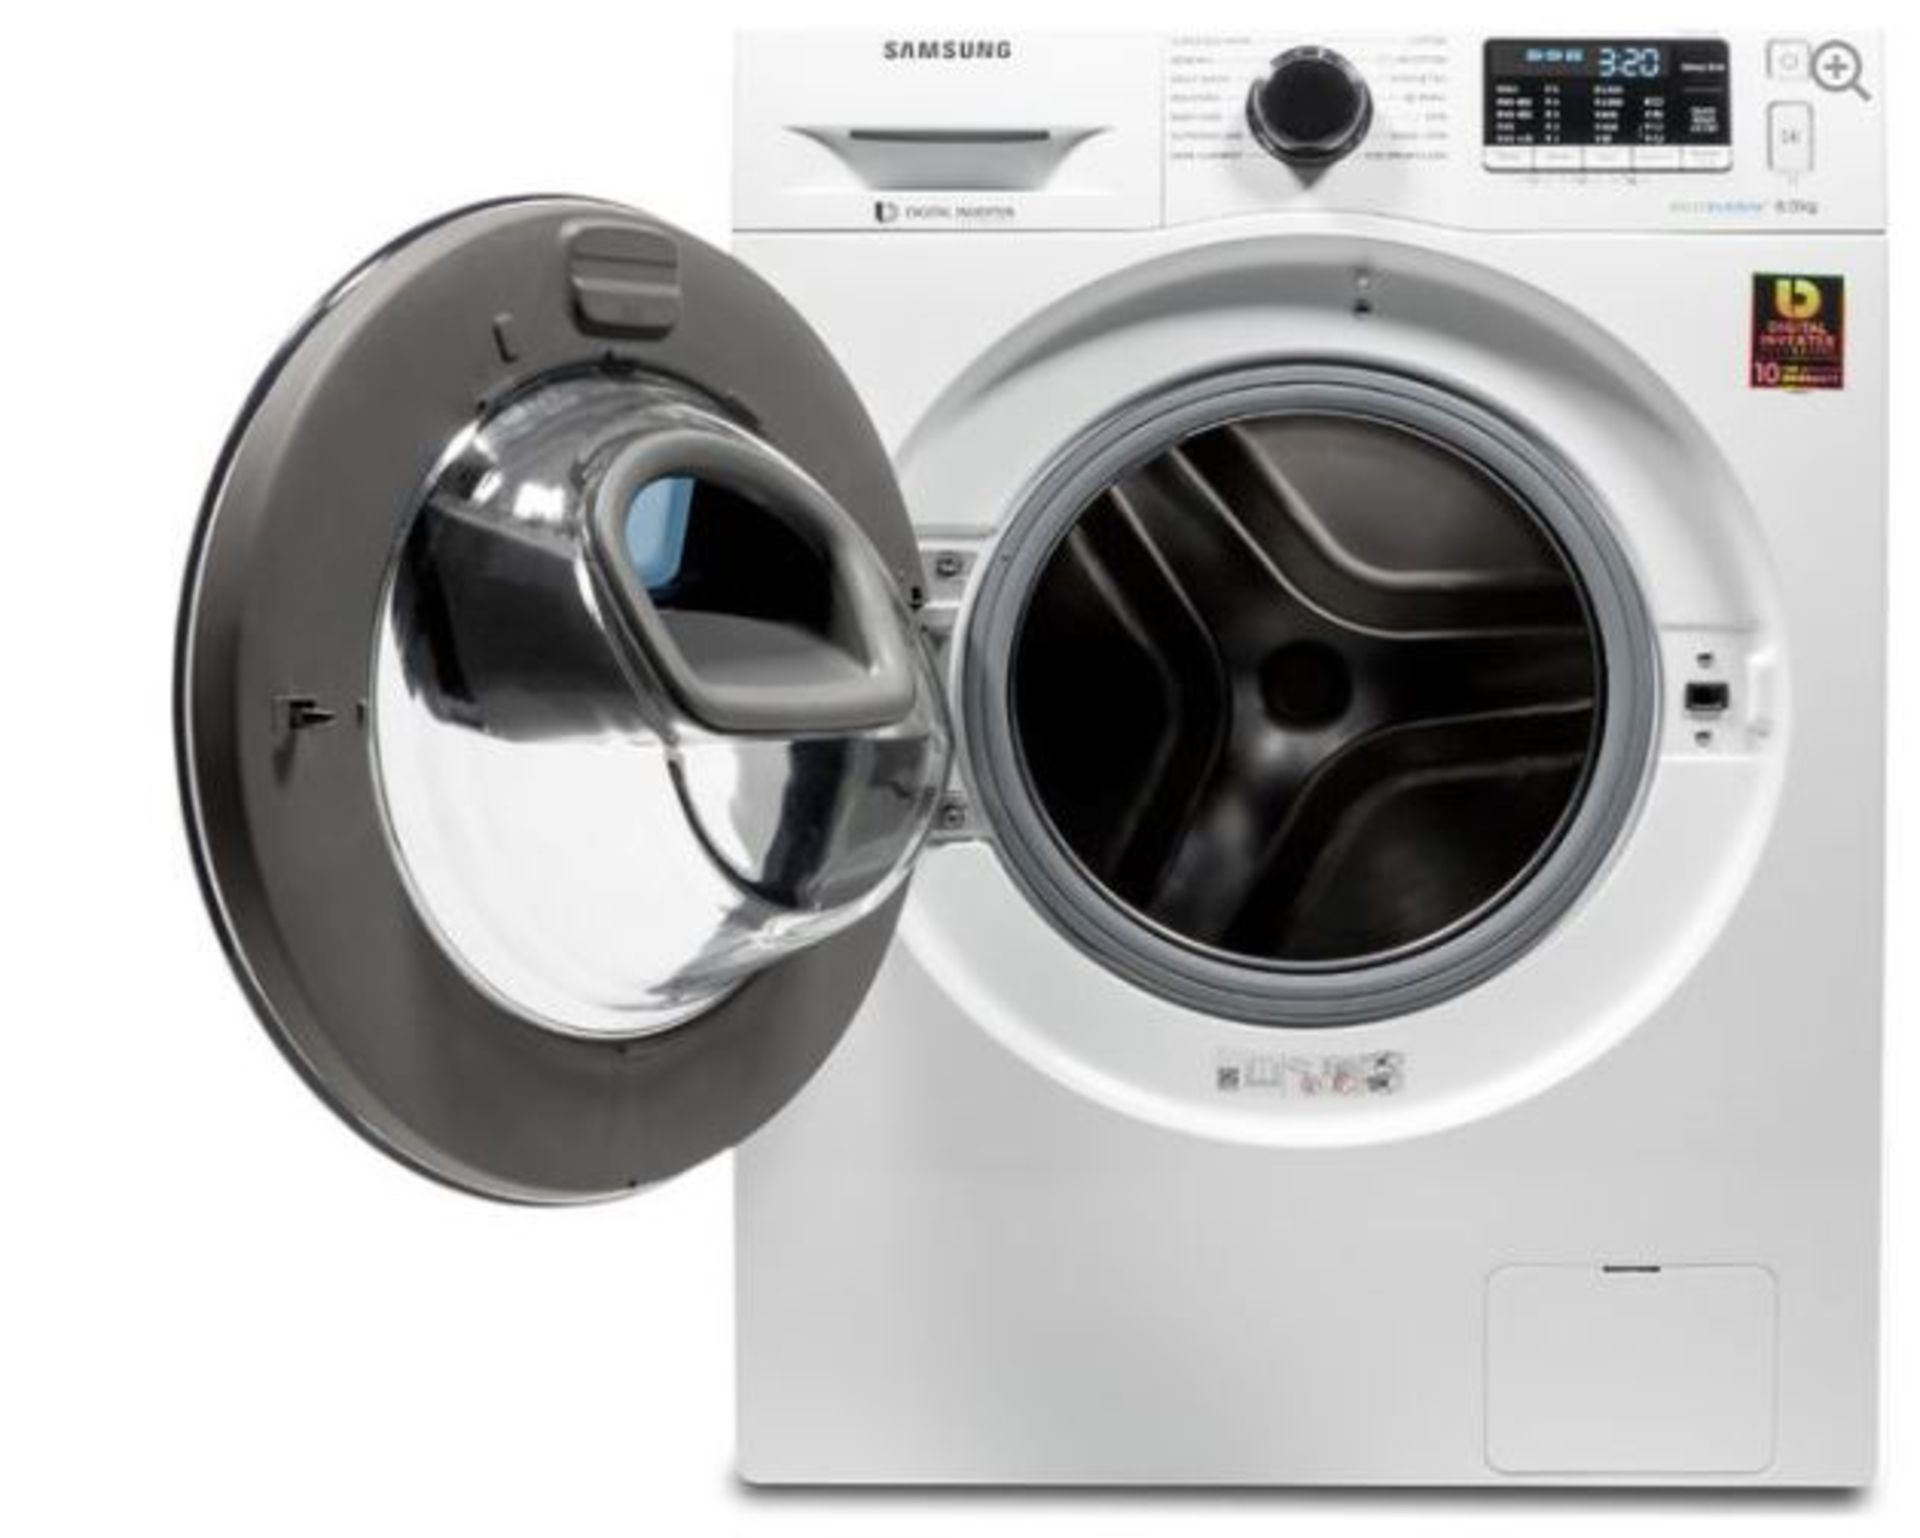 Pallet of 3 Samsung Premium Washing machines. Total Latest selling price £1,087* - Image 2 of 10